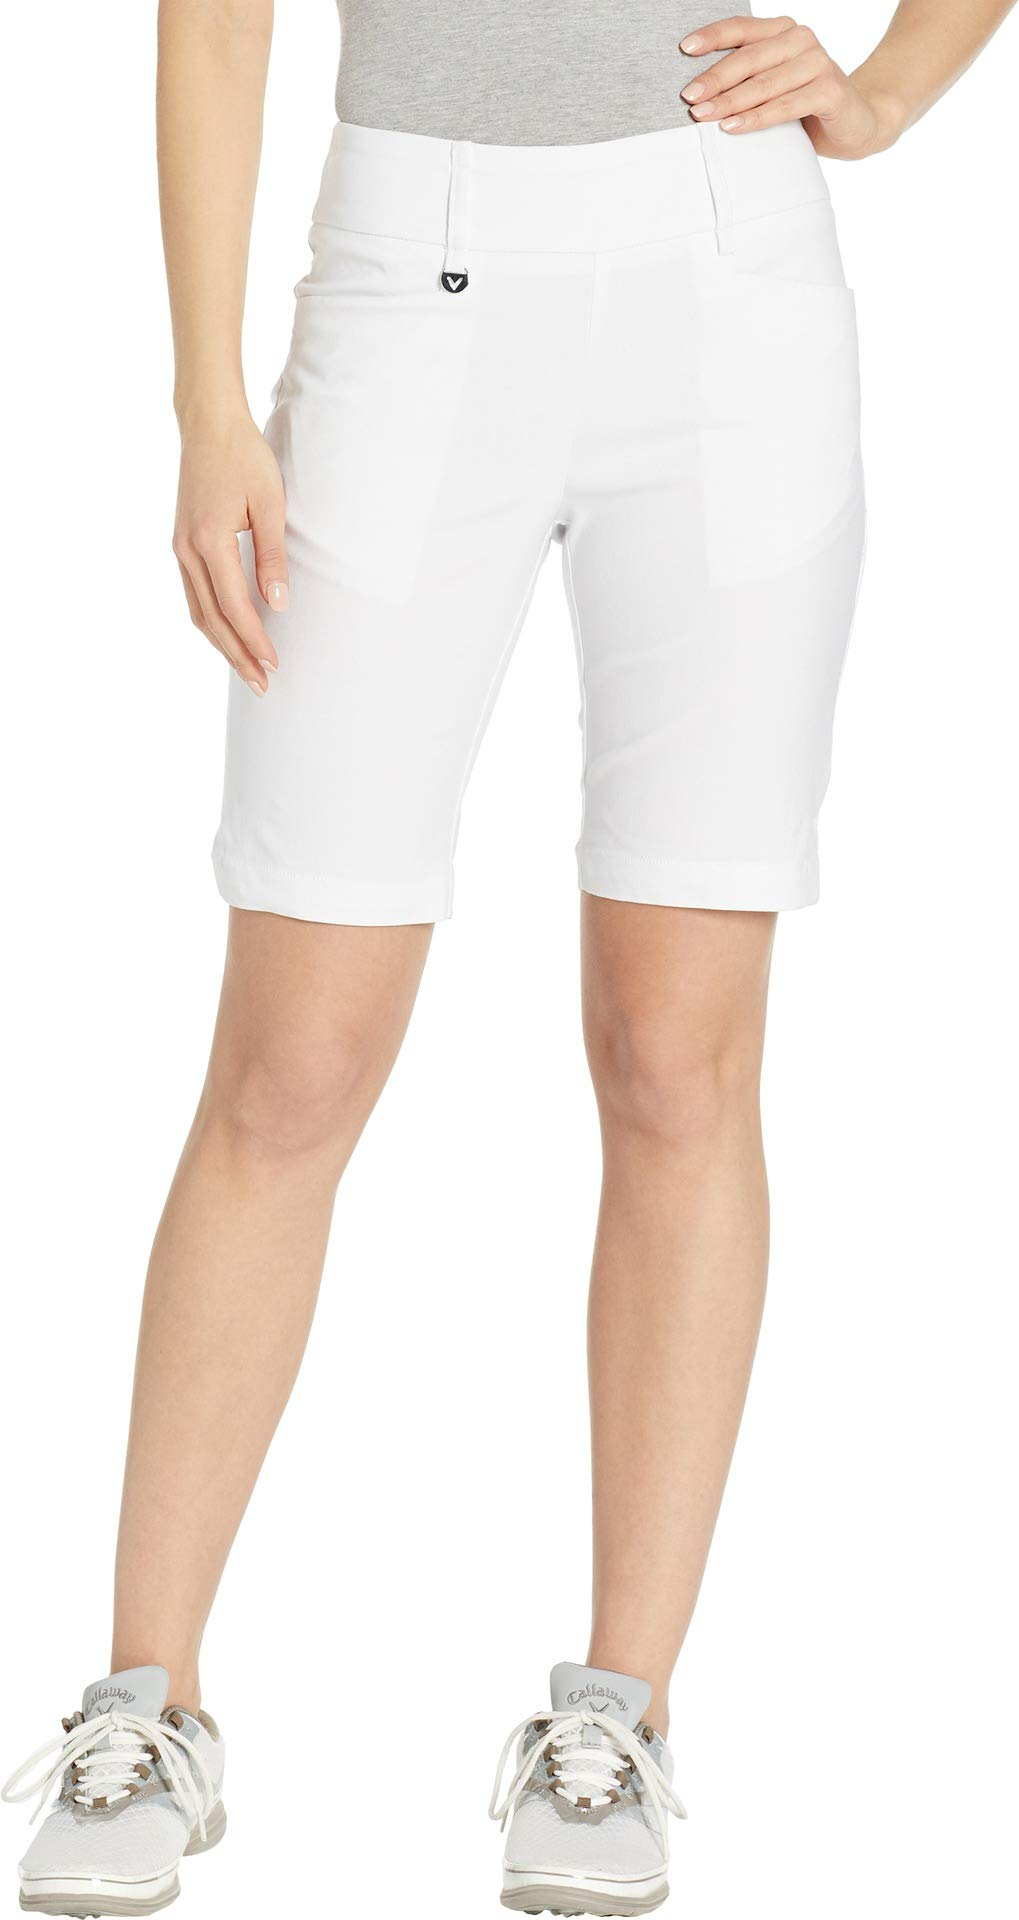 Callaway Women's Performance Flat Front 9.5'' Inseam Short, Solid Brilliant White, XX-Large by Callaway